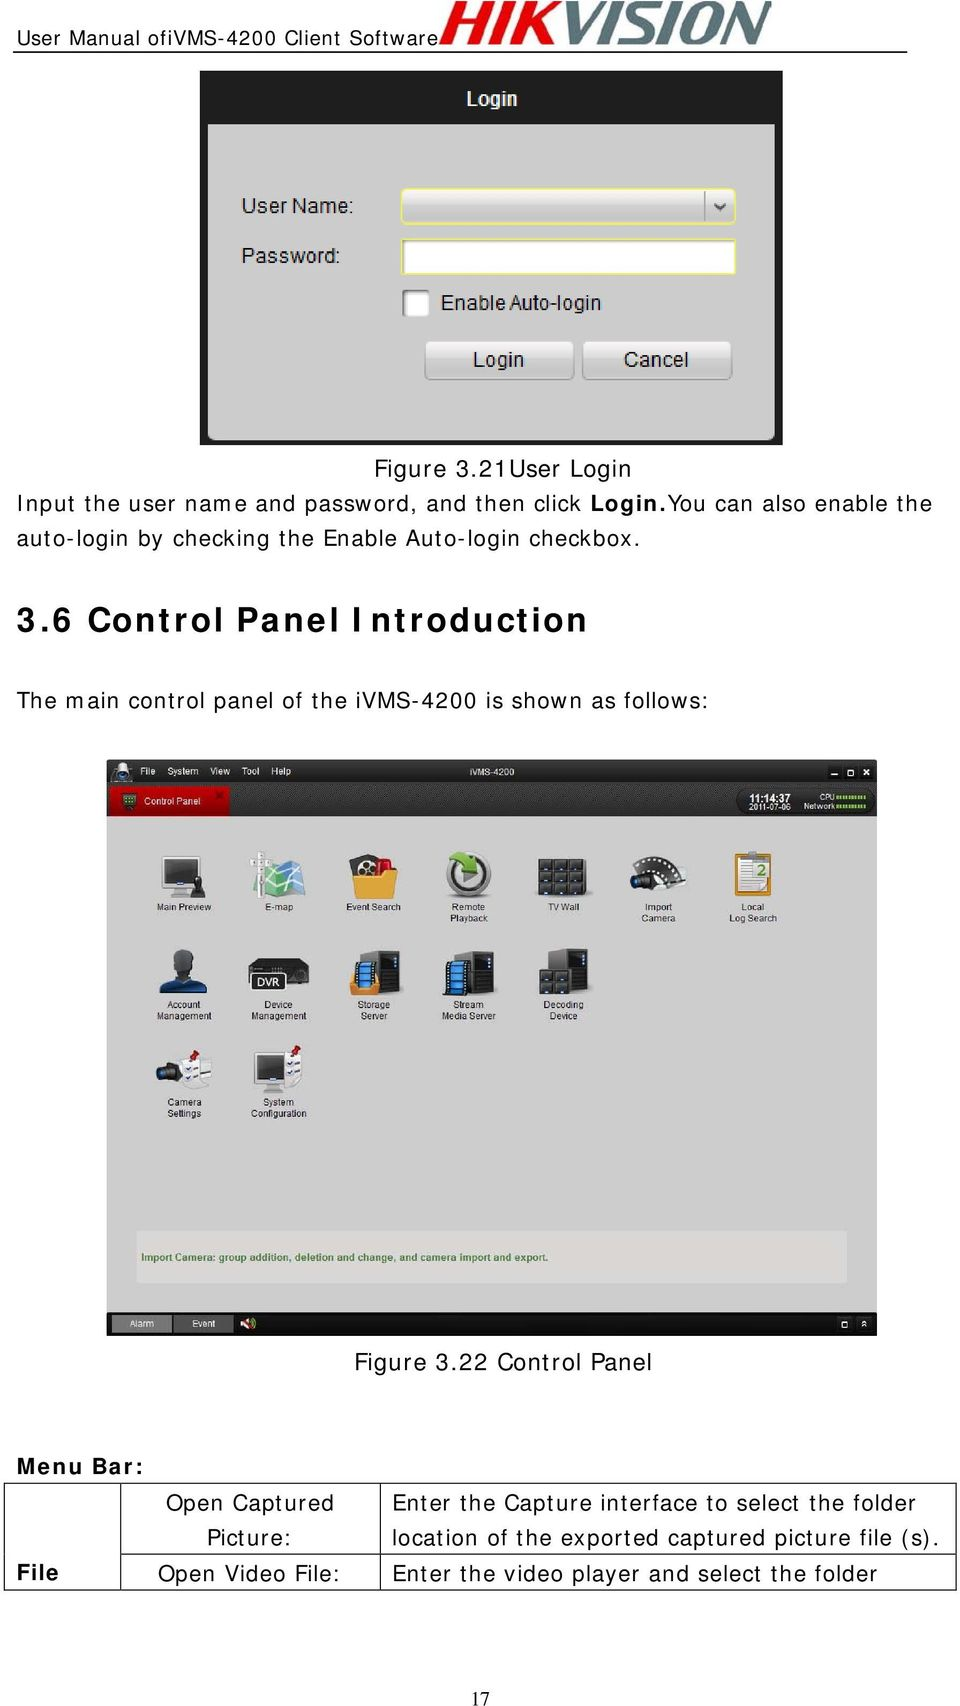 6 Control Panel Introduction The main control panel of the ivms-4200 is shown as follows: Figure 3.